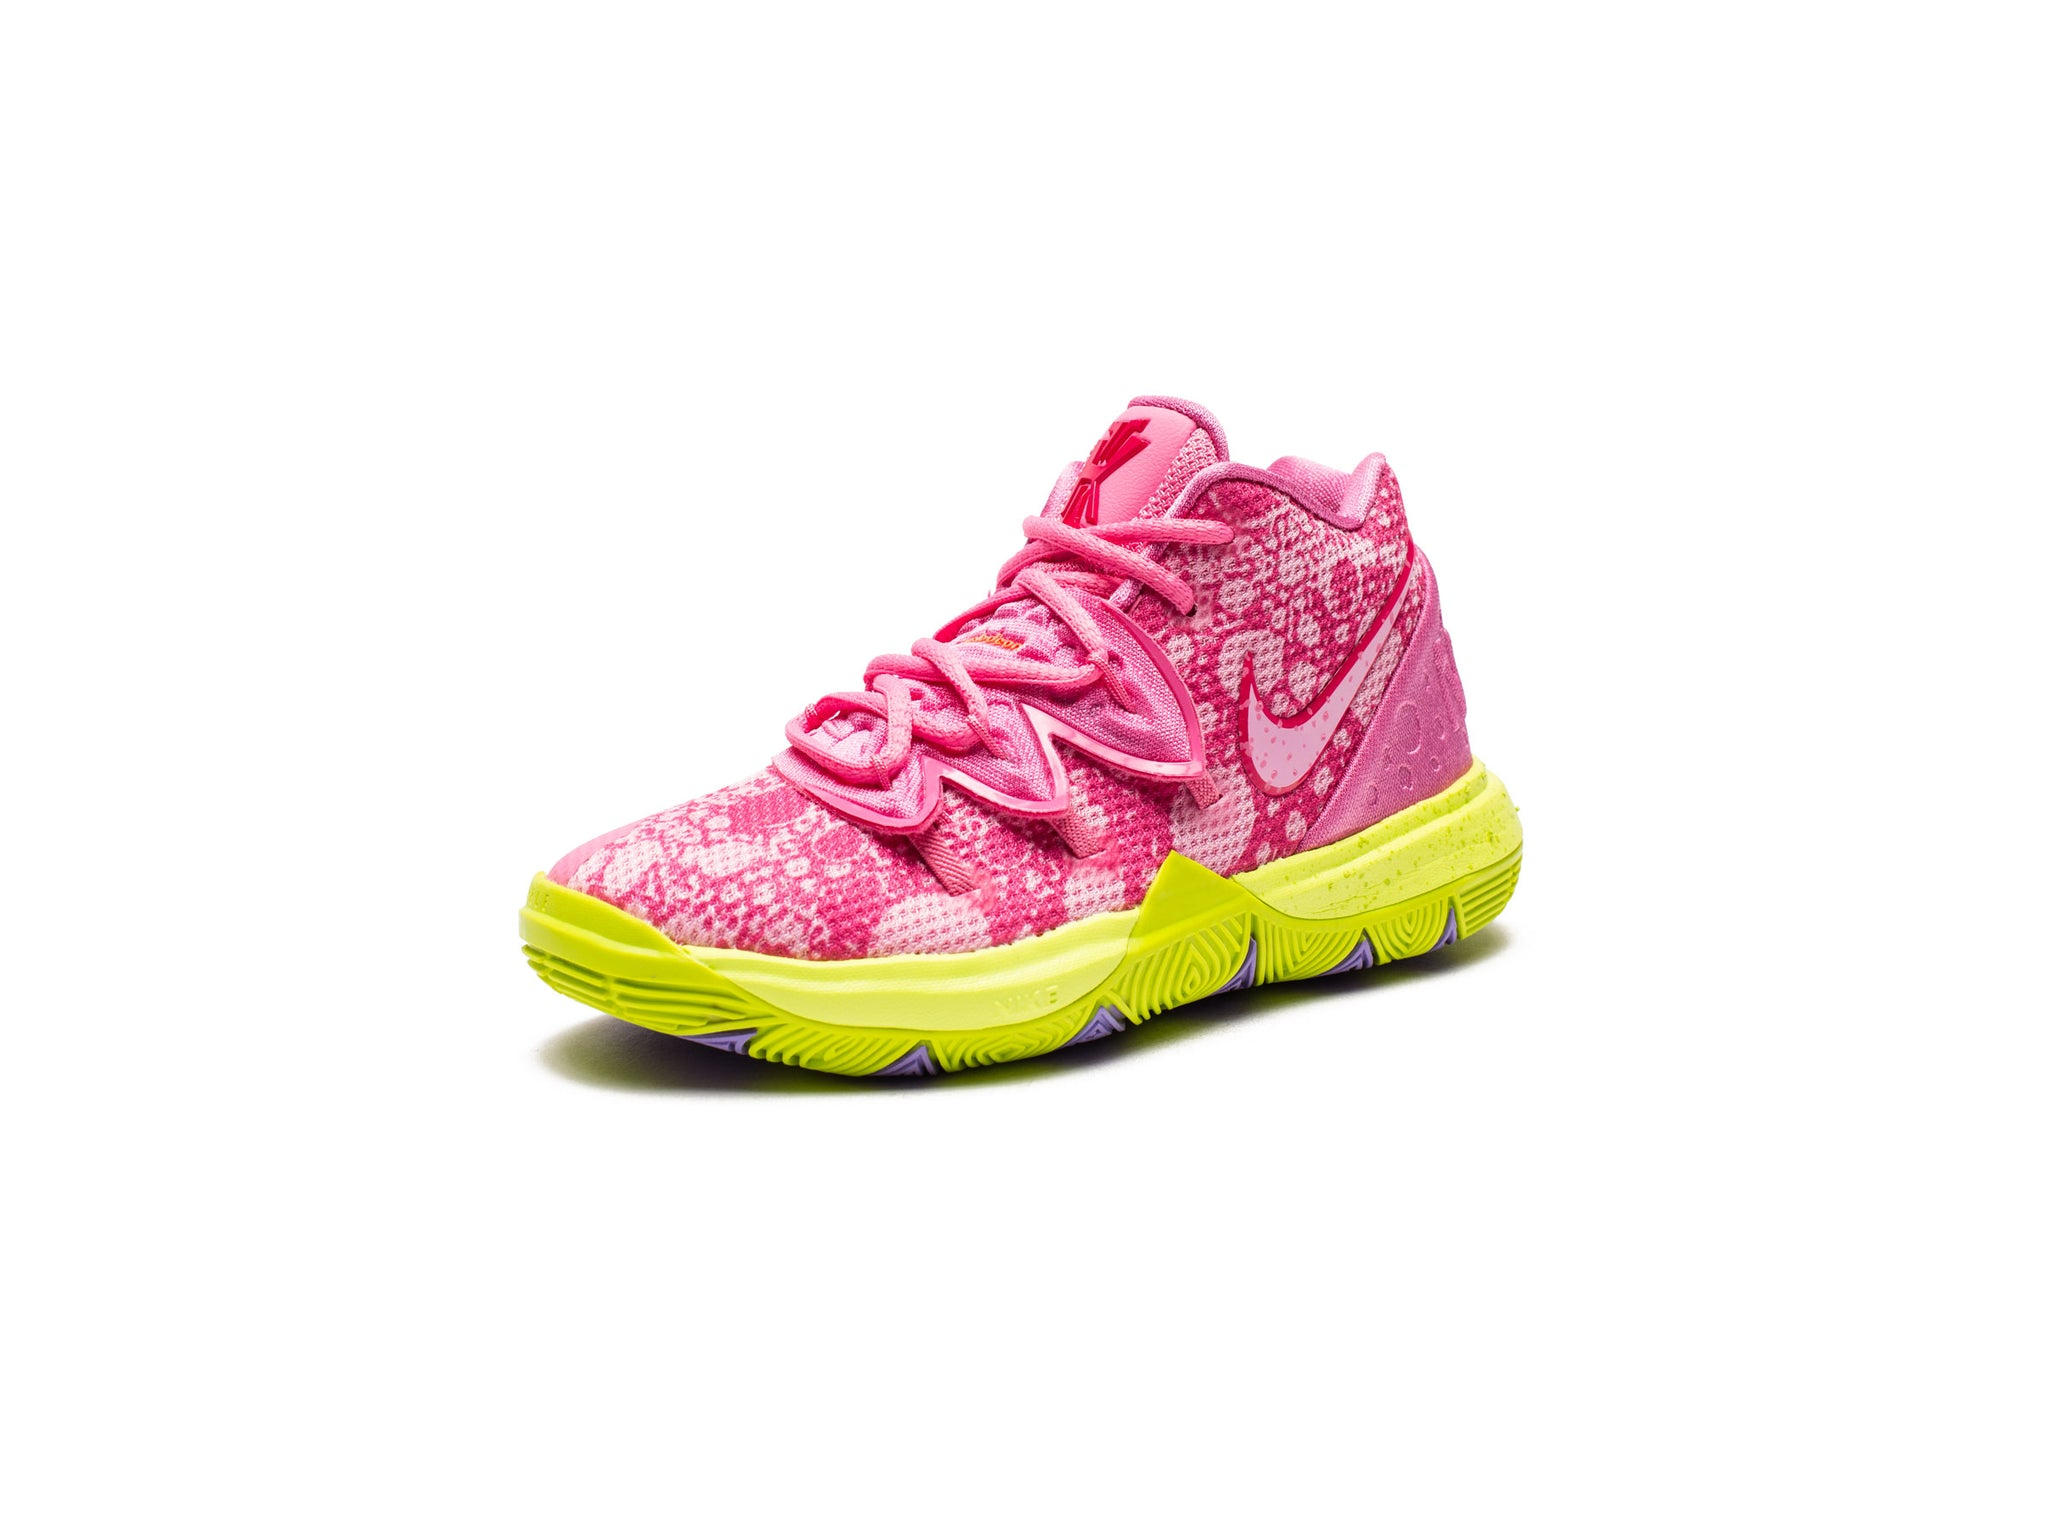 NIKE X SPONGEBOB PS KYRIE 5 - LOTUSPINK/UNIVERSITYRED/CYBER